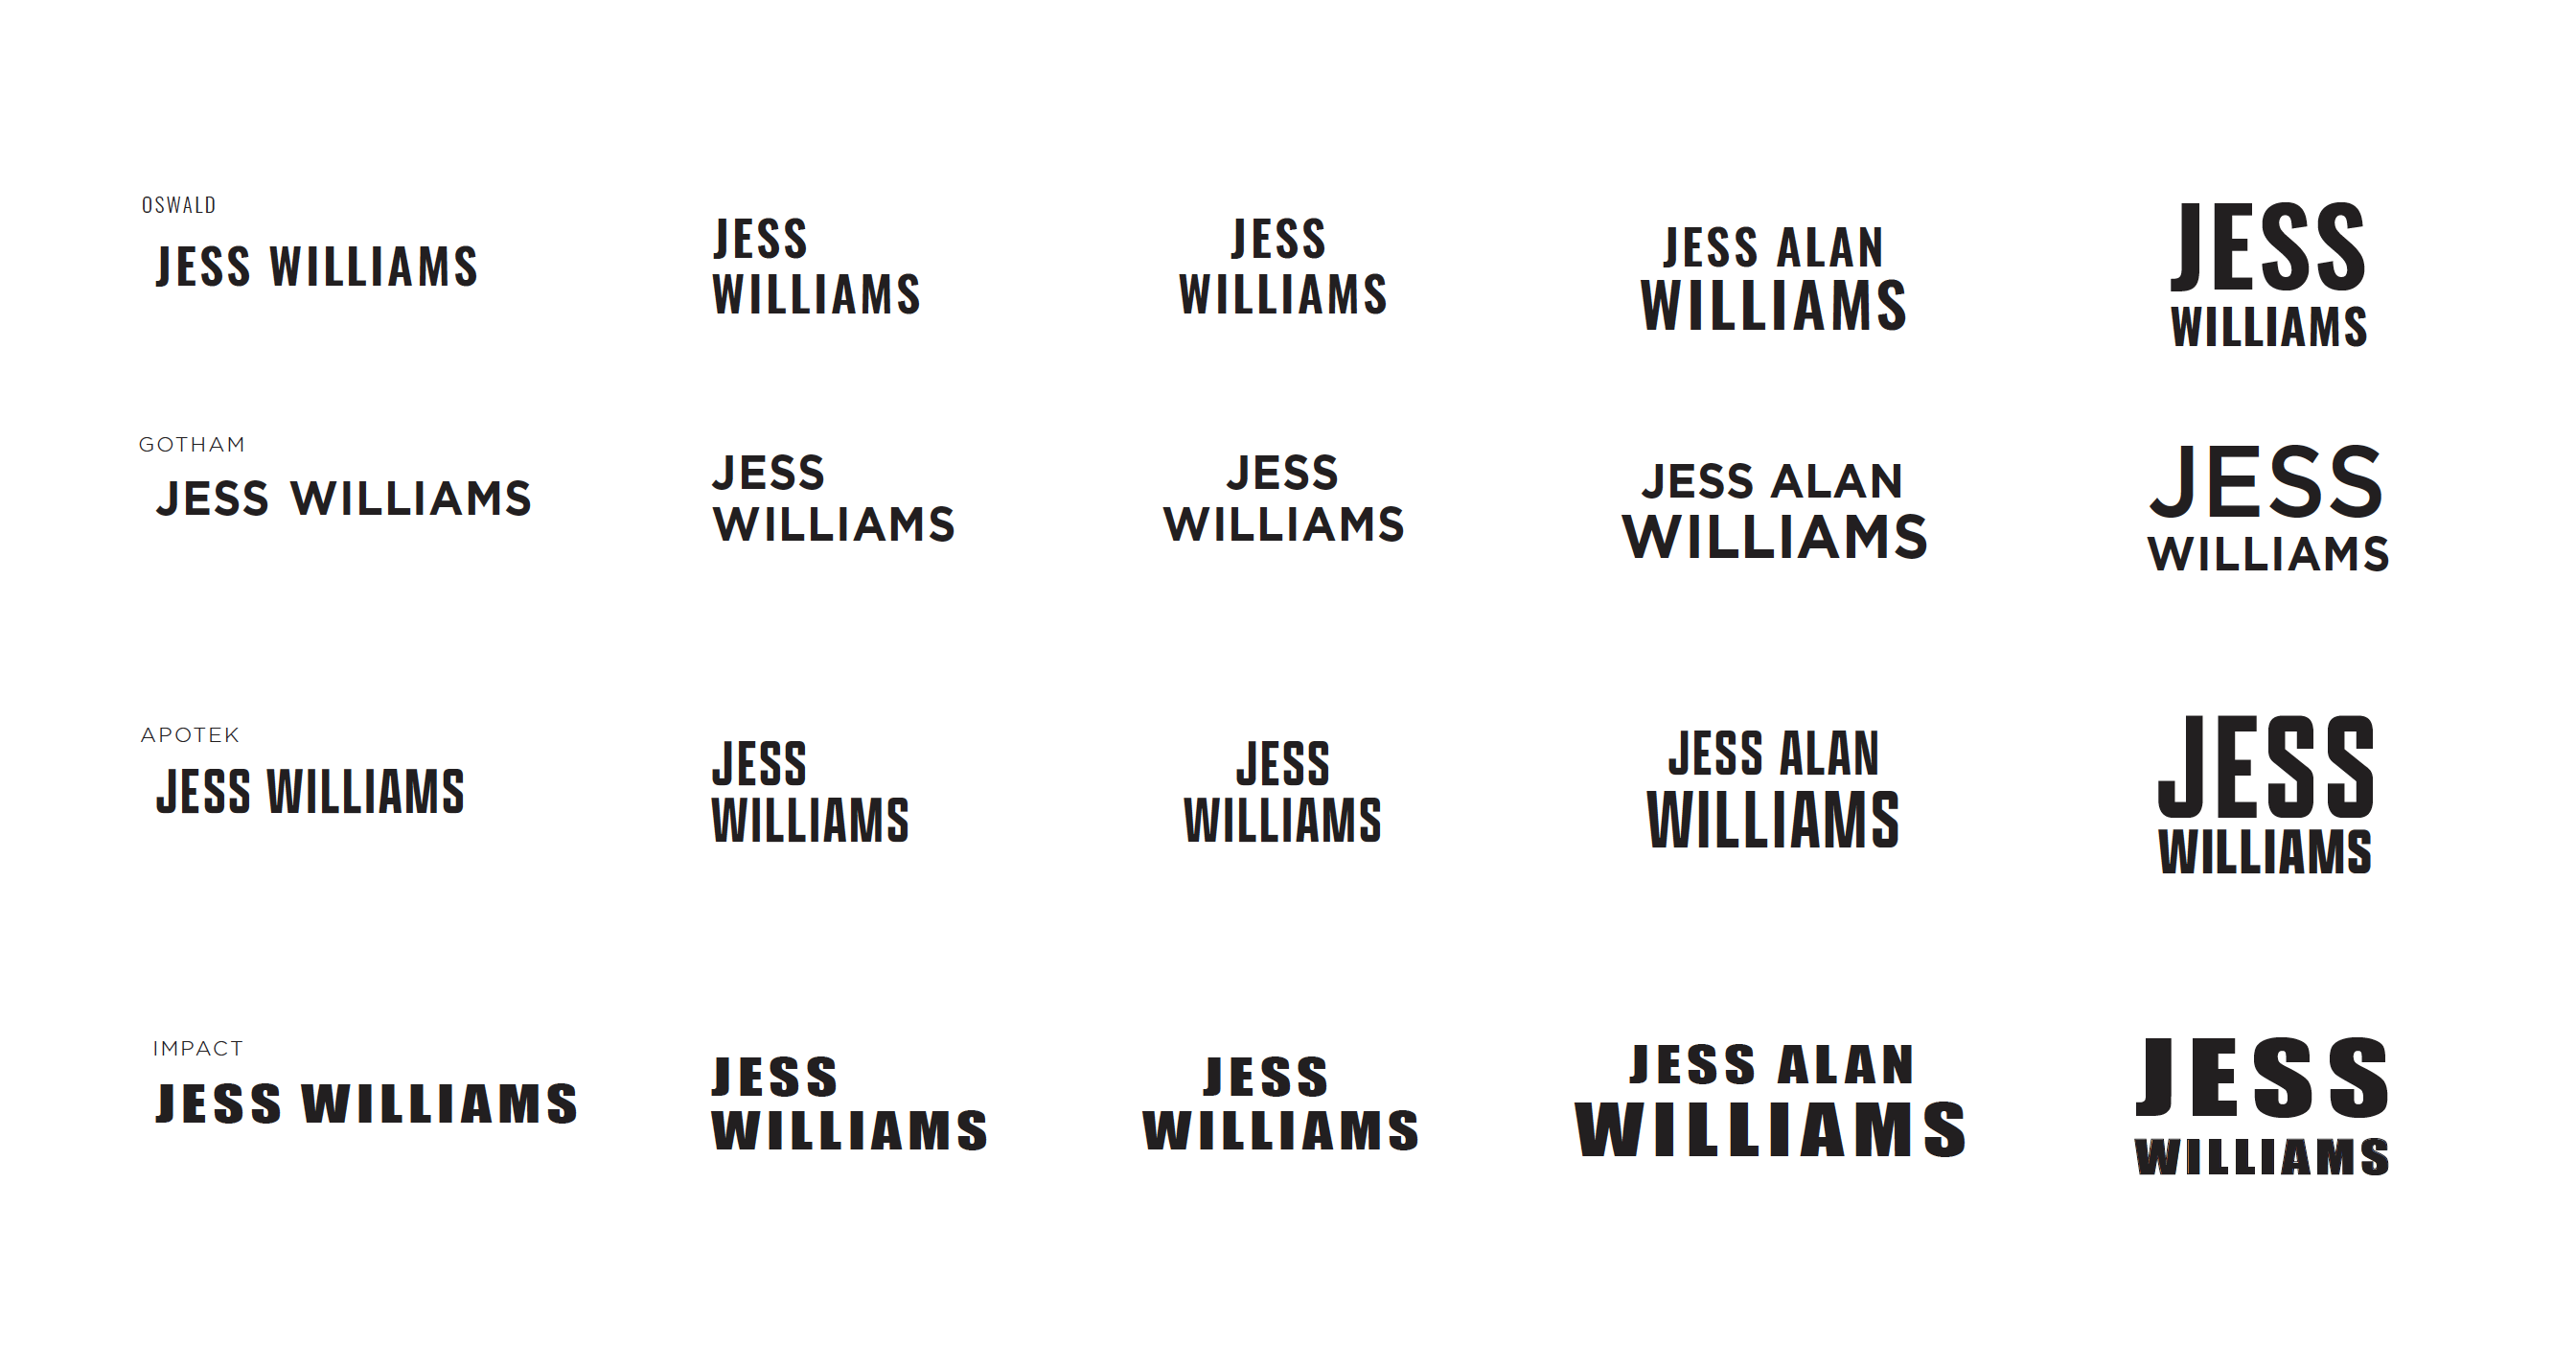 Second round of choices sent by Lindsay to Jess for his Wordmark